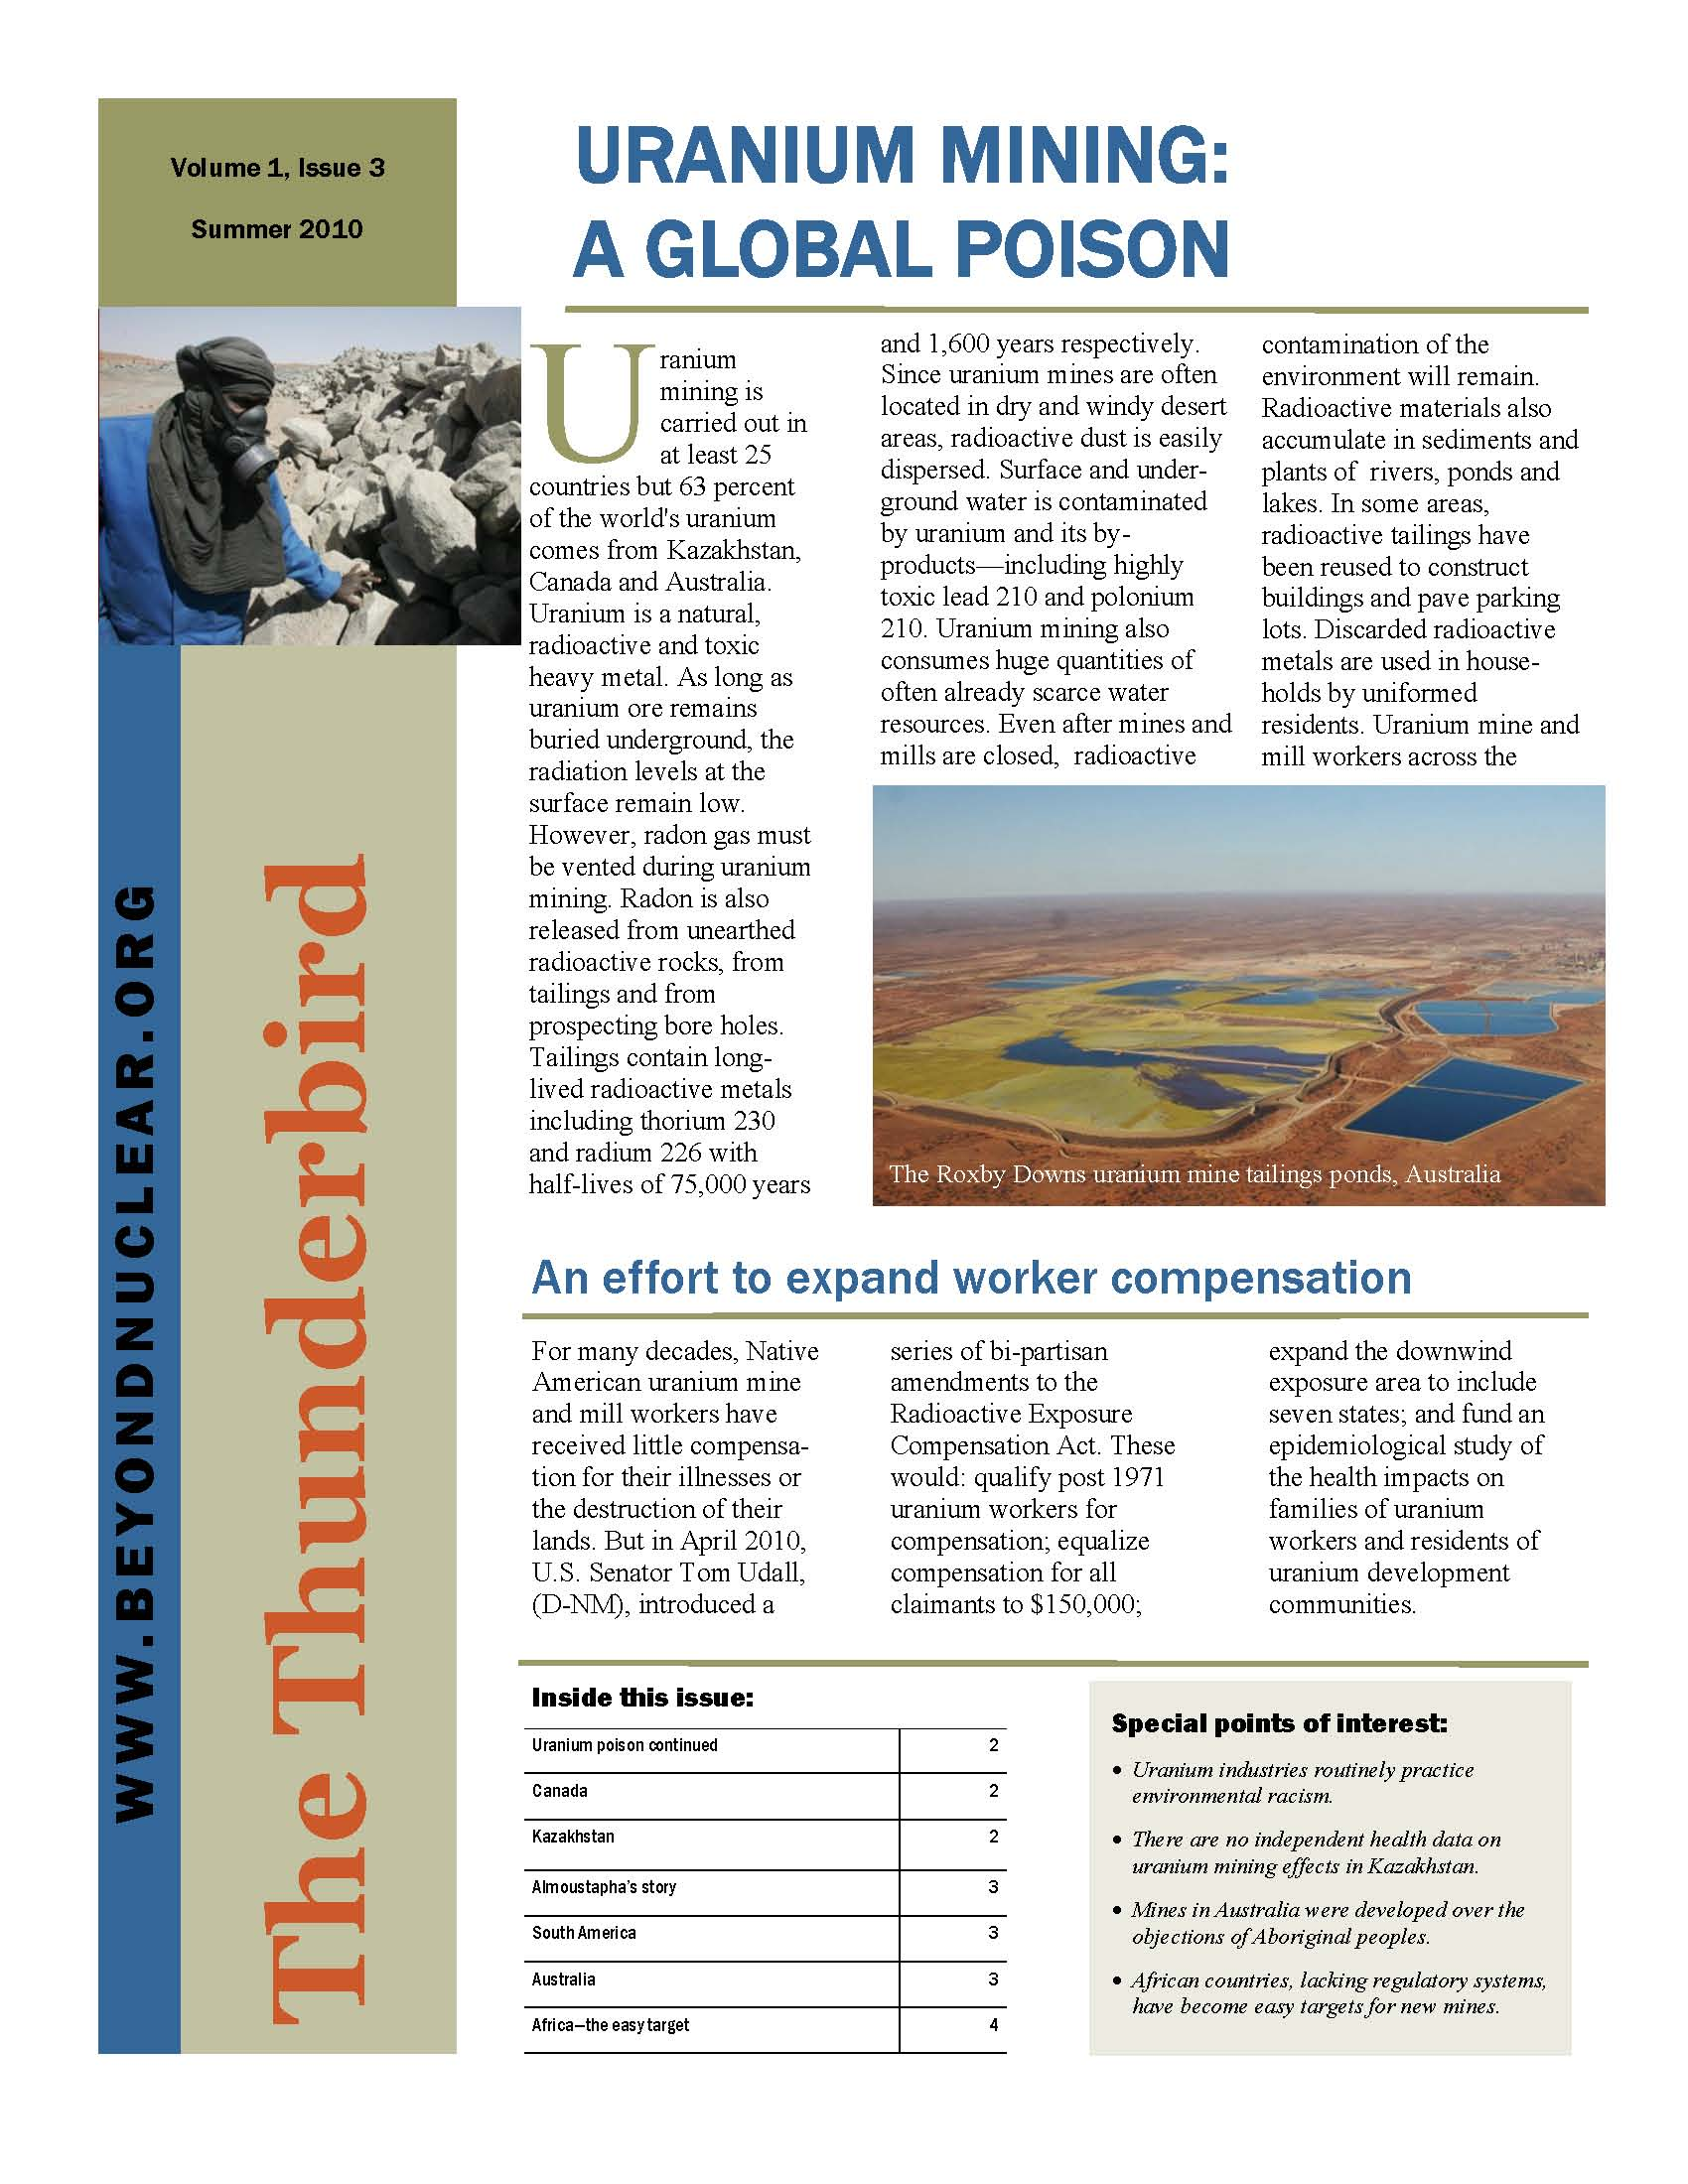 the effects of uranium mining on the environment